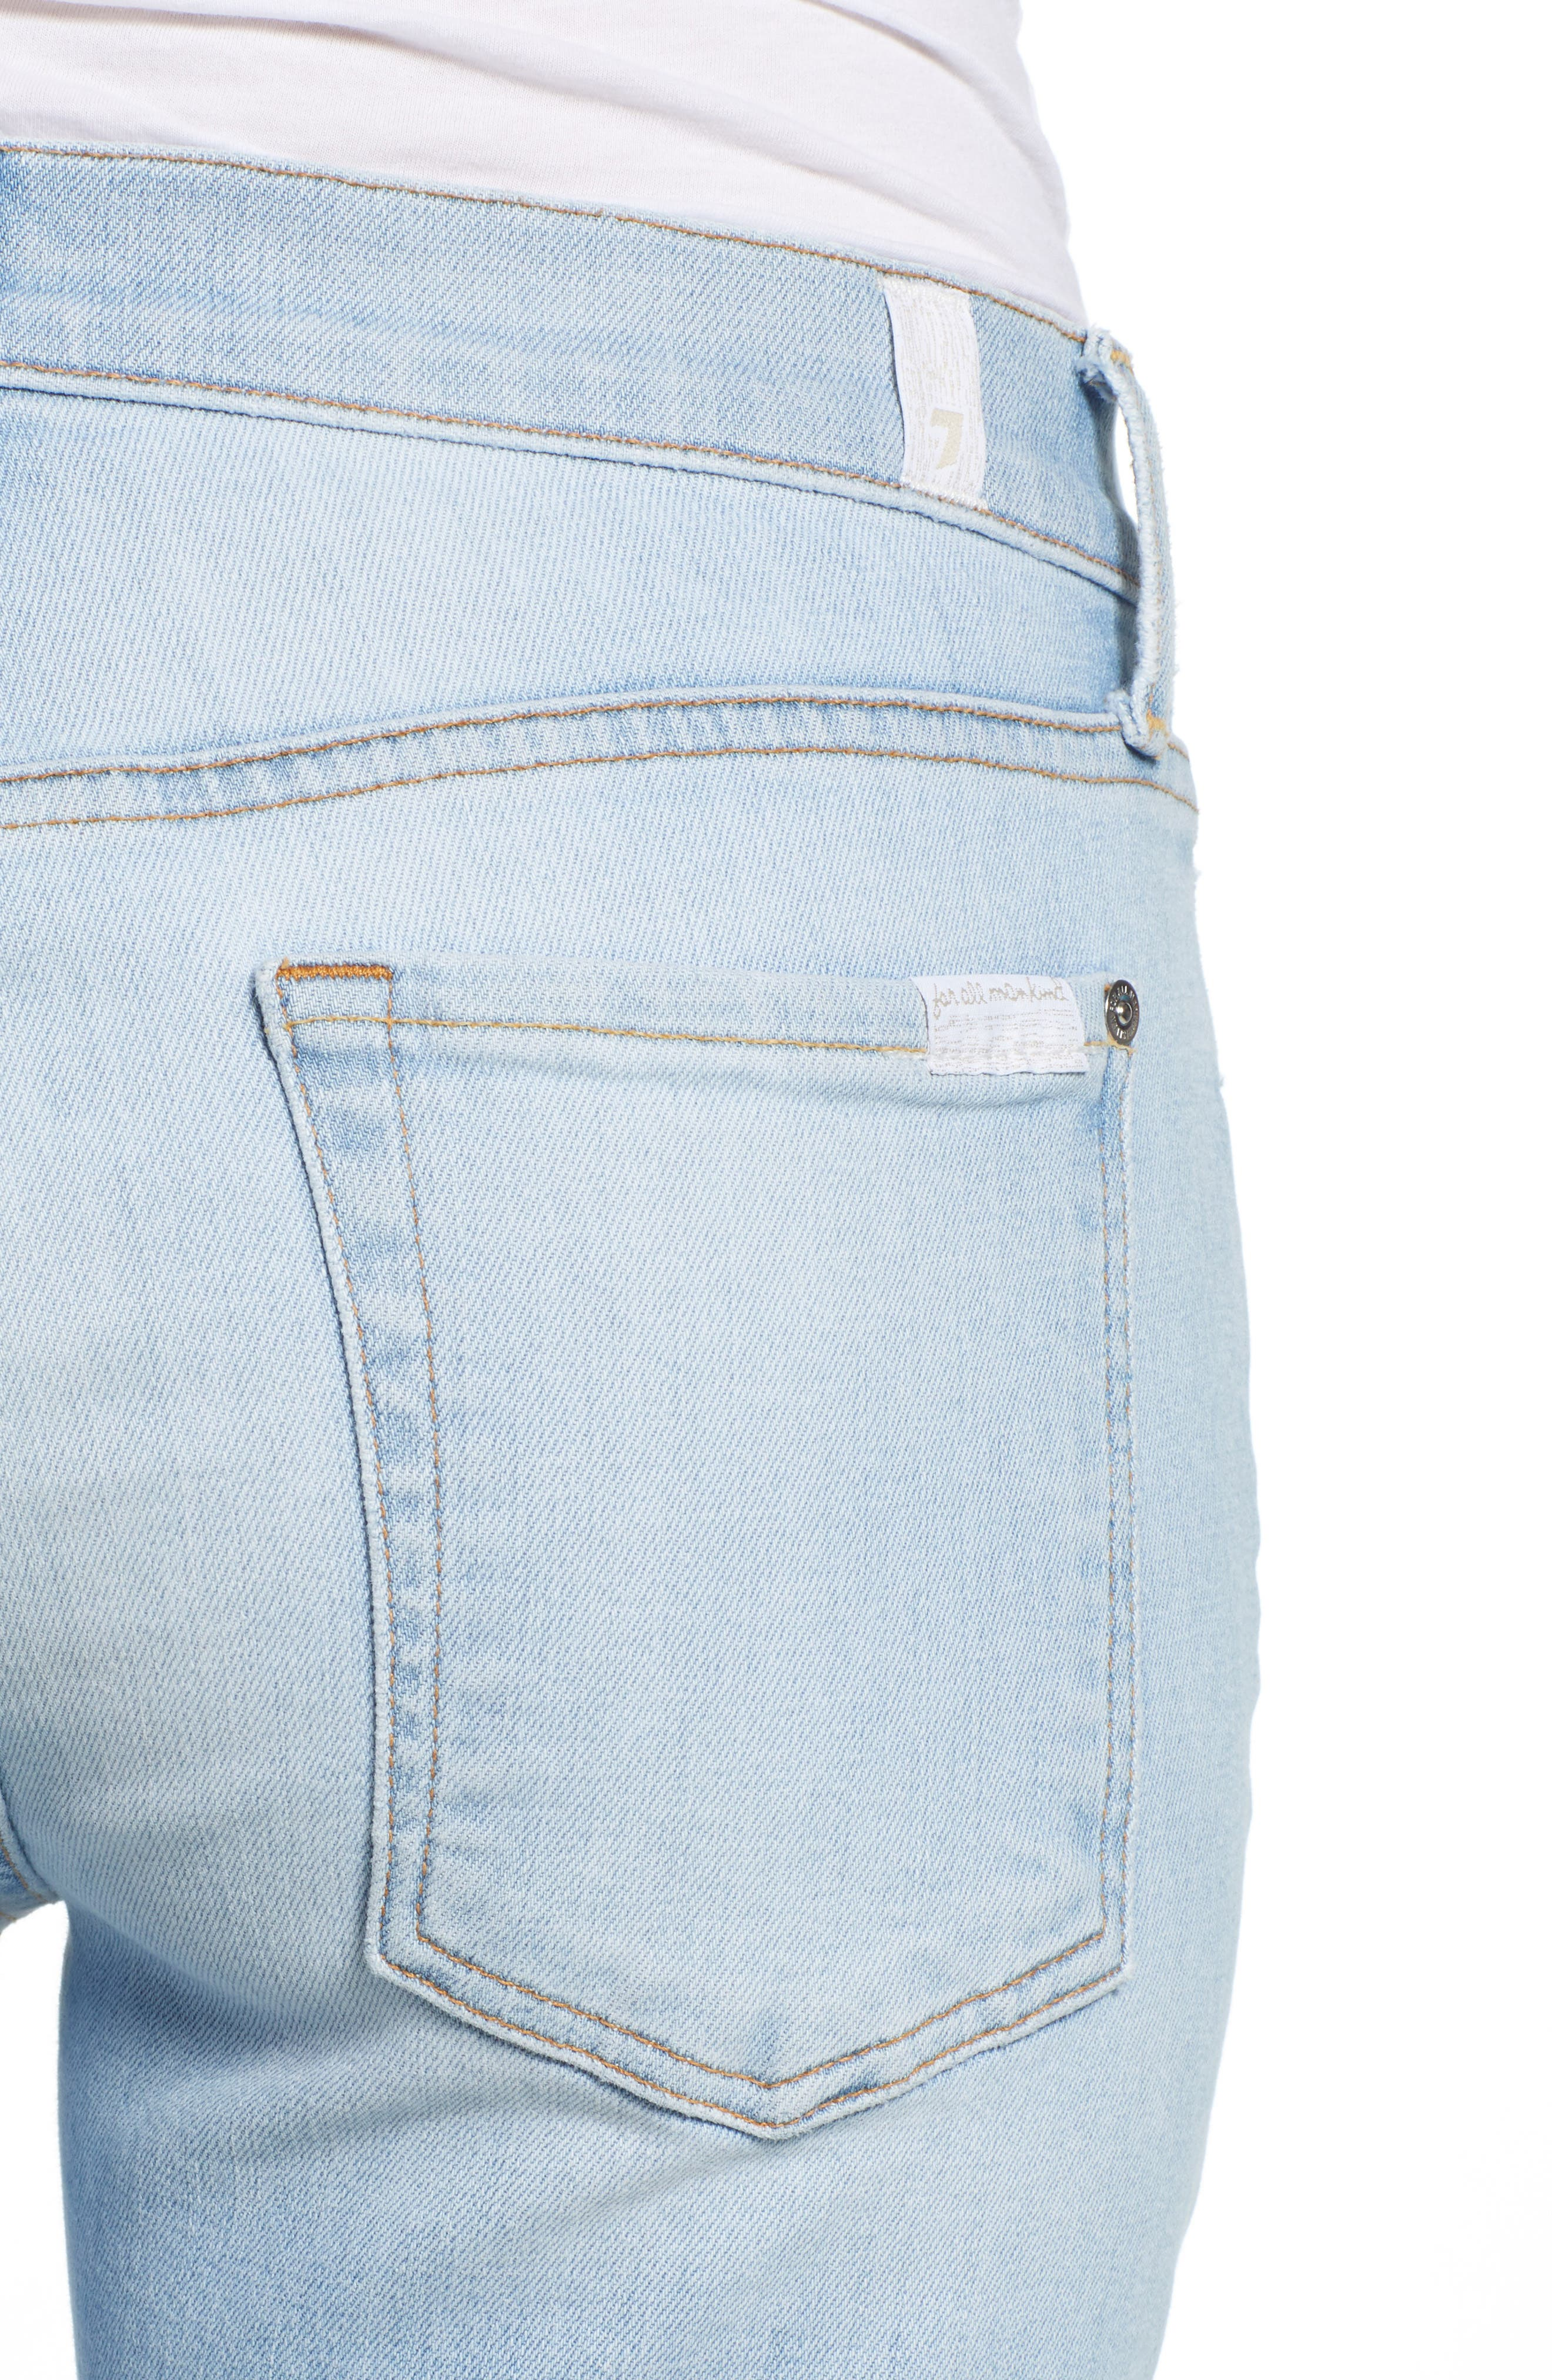 7 FOR ALL MANKIND<SUP>®</SUP>, 'Josefina' Boyfriend Jeans, Alternate thumbnail 5, color, 408